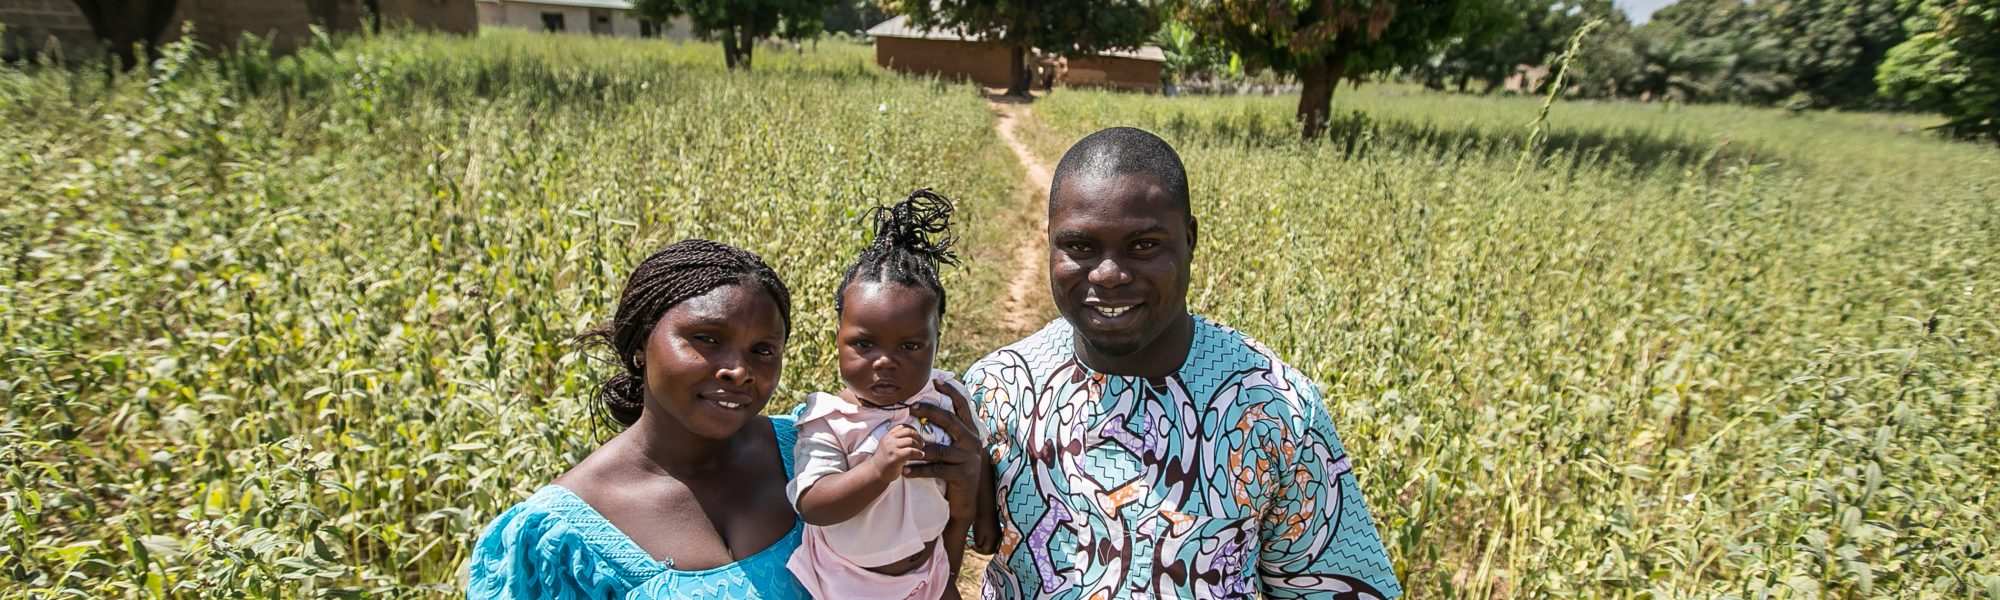 Peter Anmusku and wife Ruth  with daughter, Naomi, standing in field.